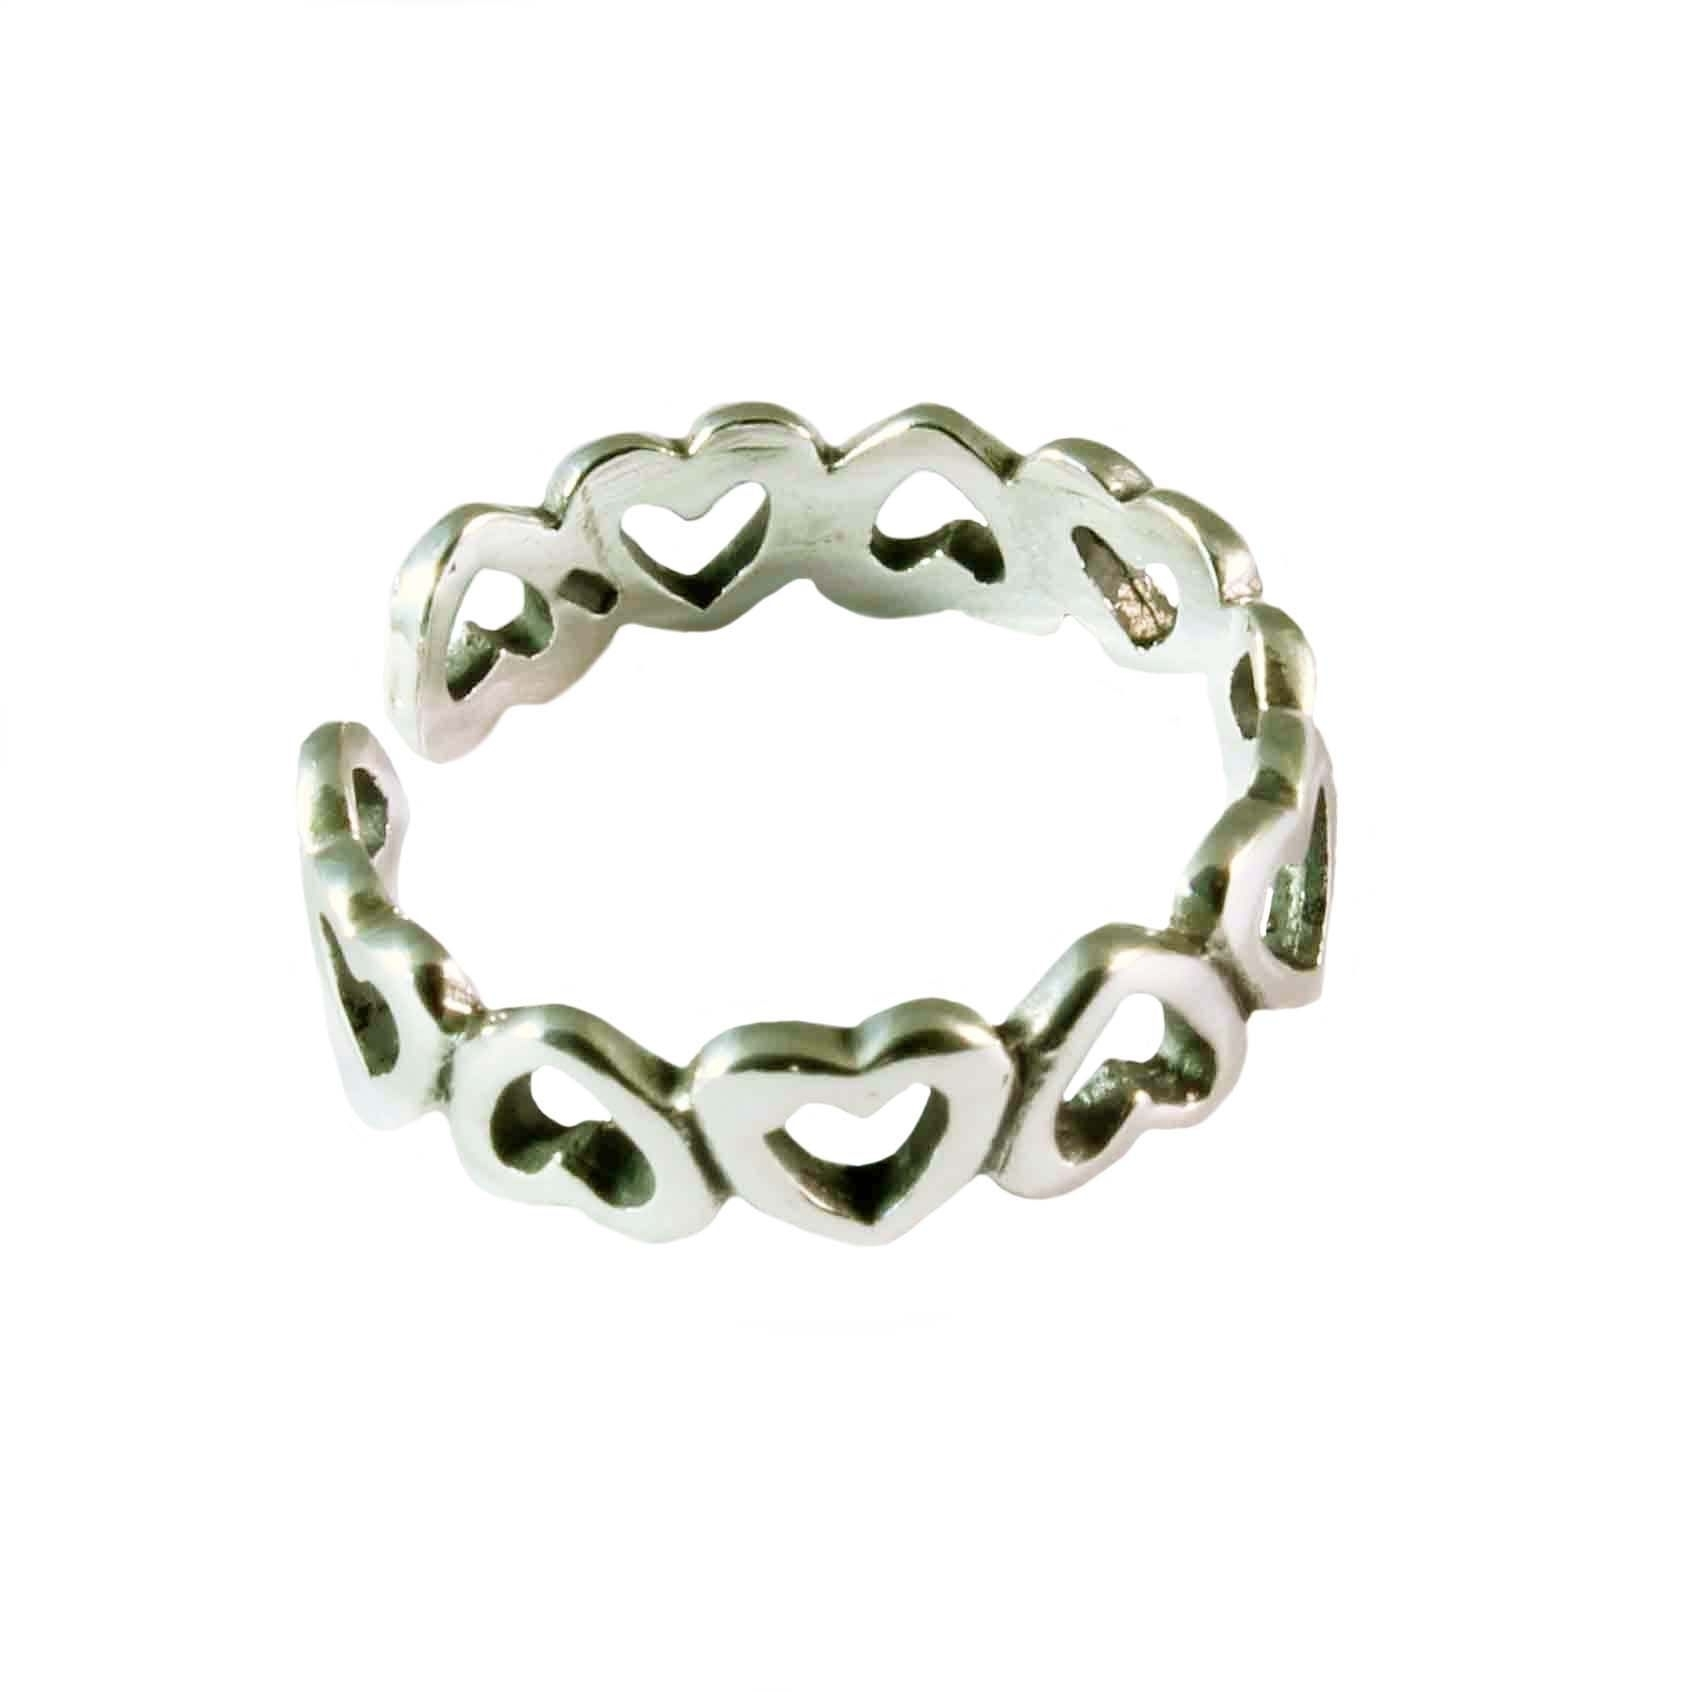 Charm School Uk > Sterling Silver Toe Rings > Multiple Hearts For Most Popular Heart Toe Rings (View 8 of 15)